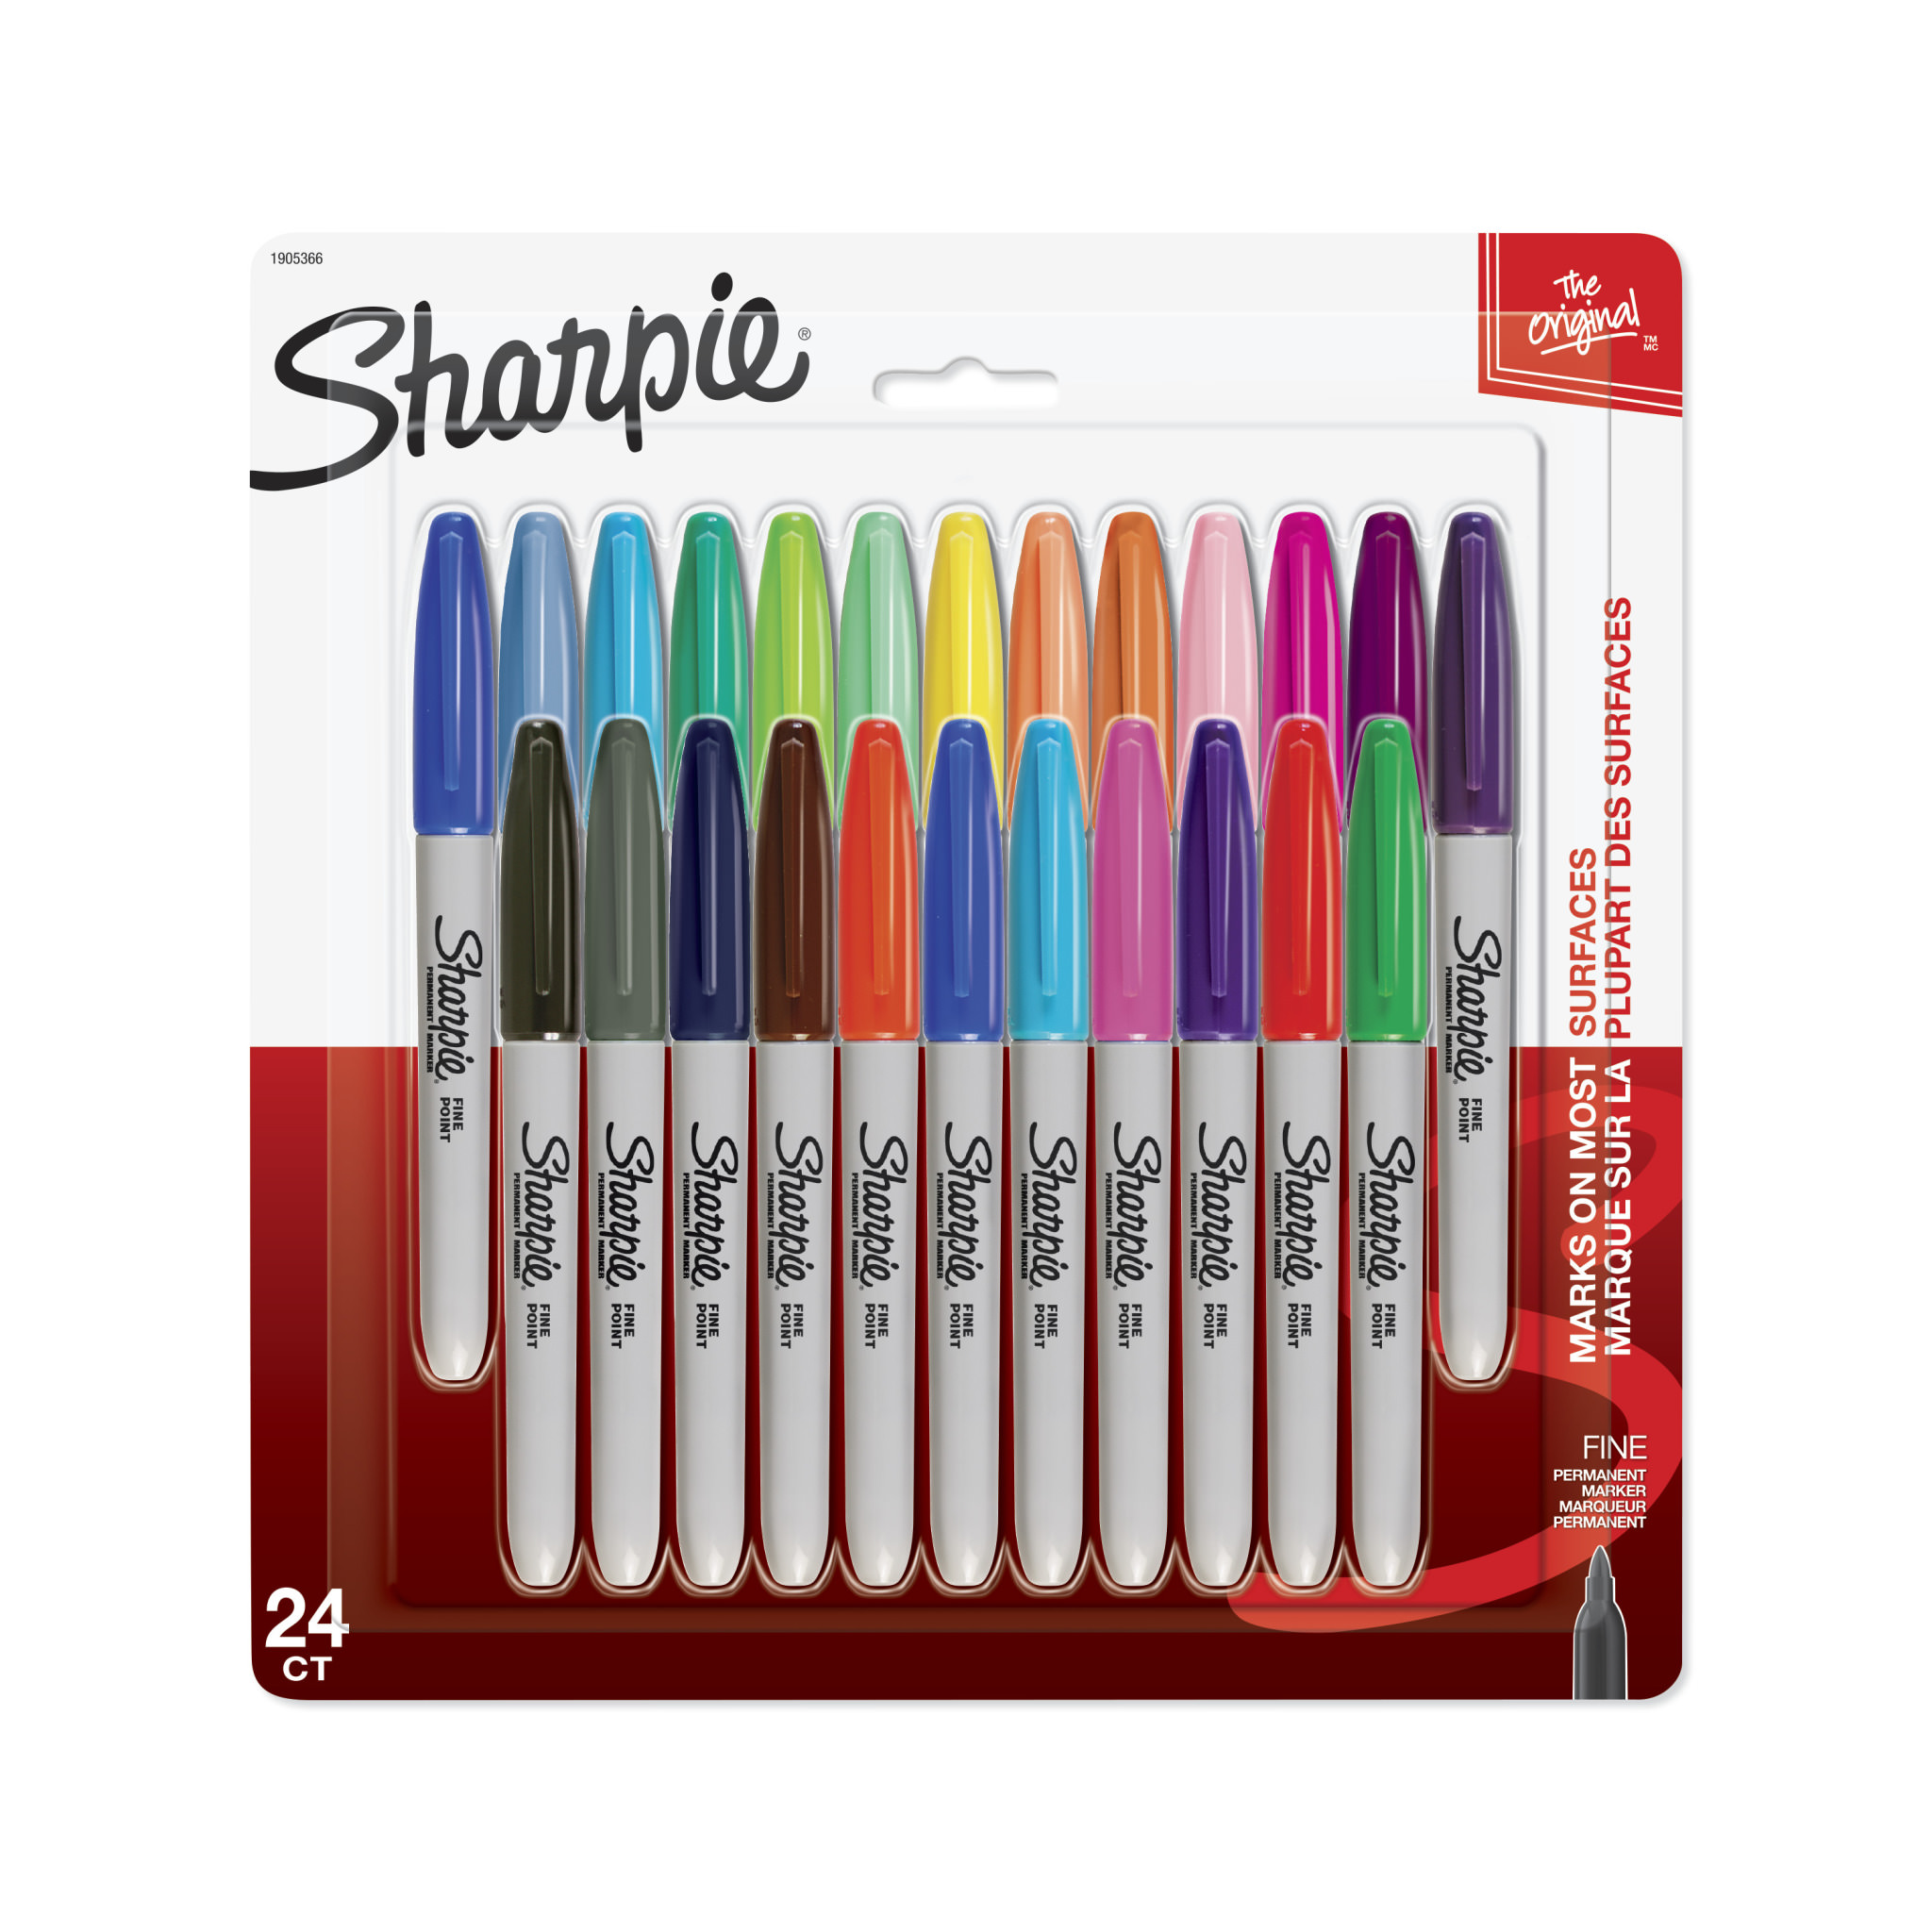 Sharpie Permanent Markers, Fine Point, Assorted Colors, 24 Count